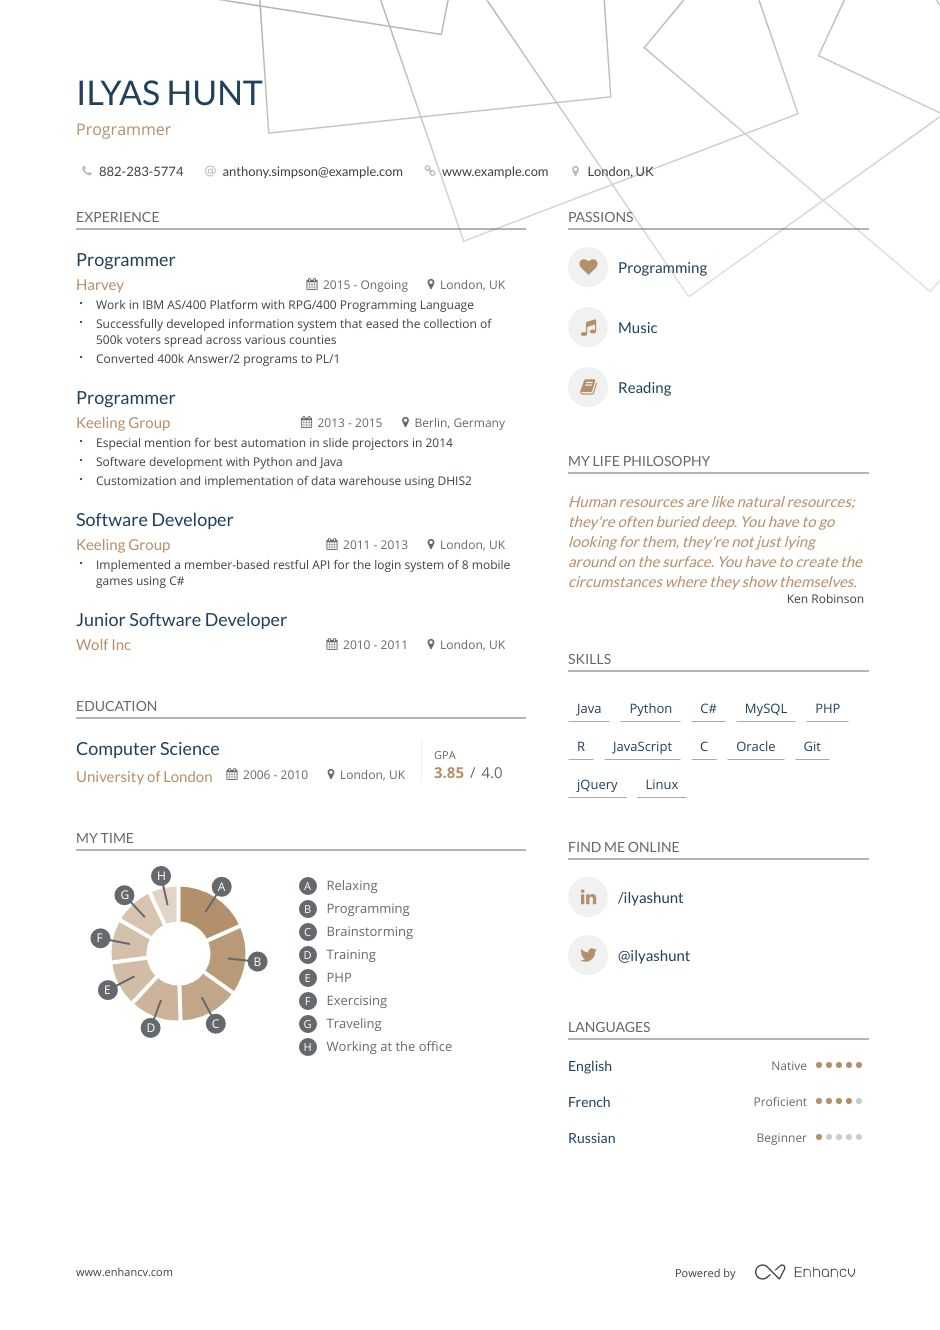 Programmer Resume Examples | Do's and Don'ts for 2020 ...